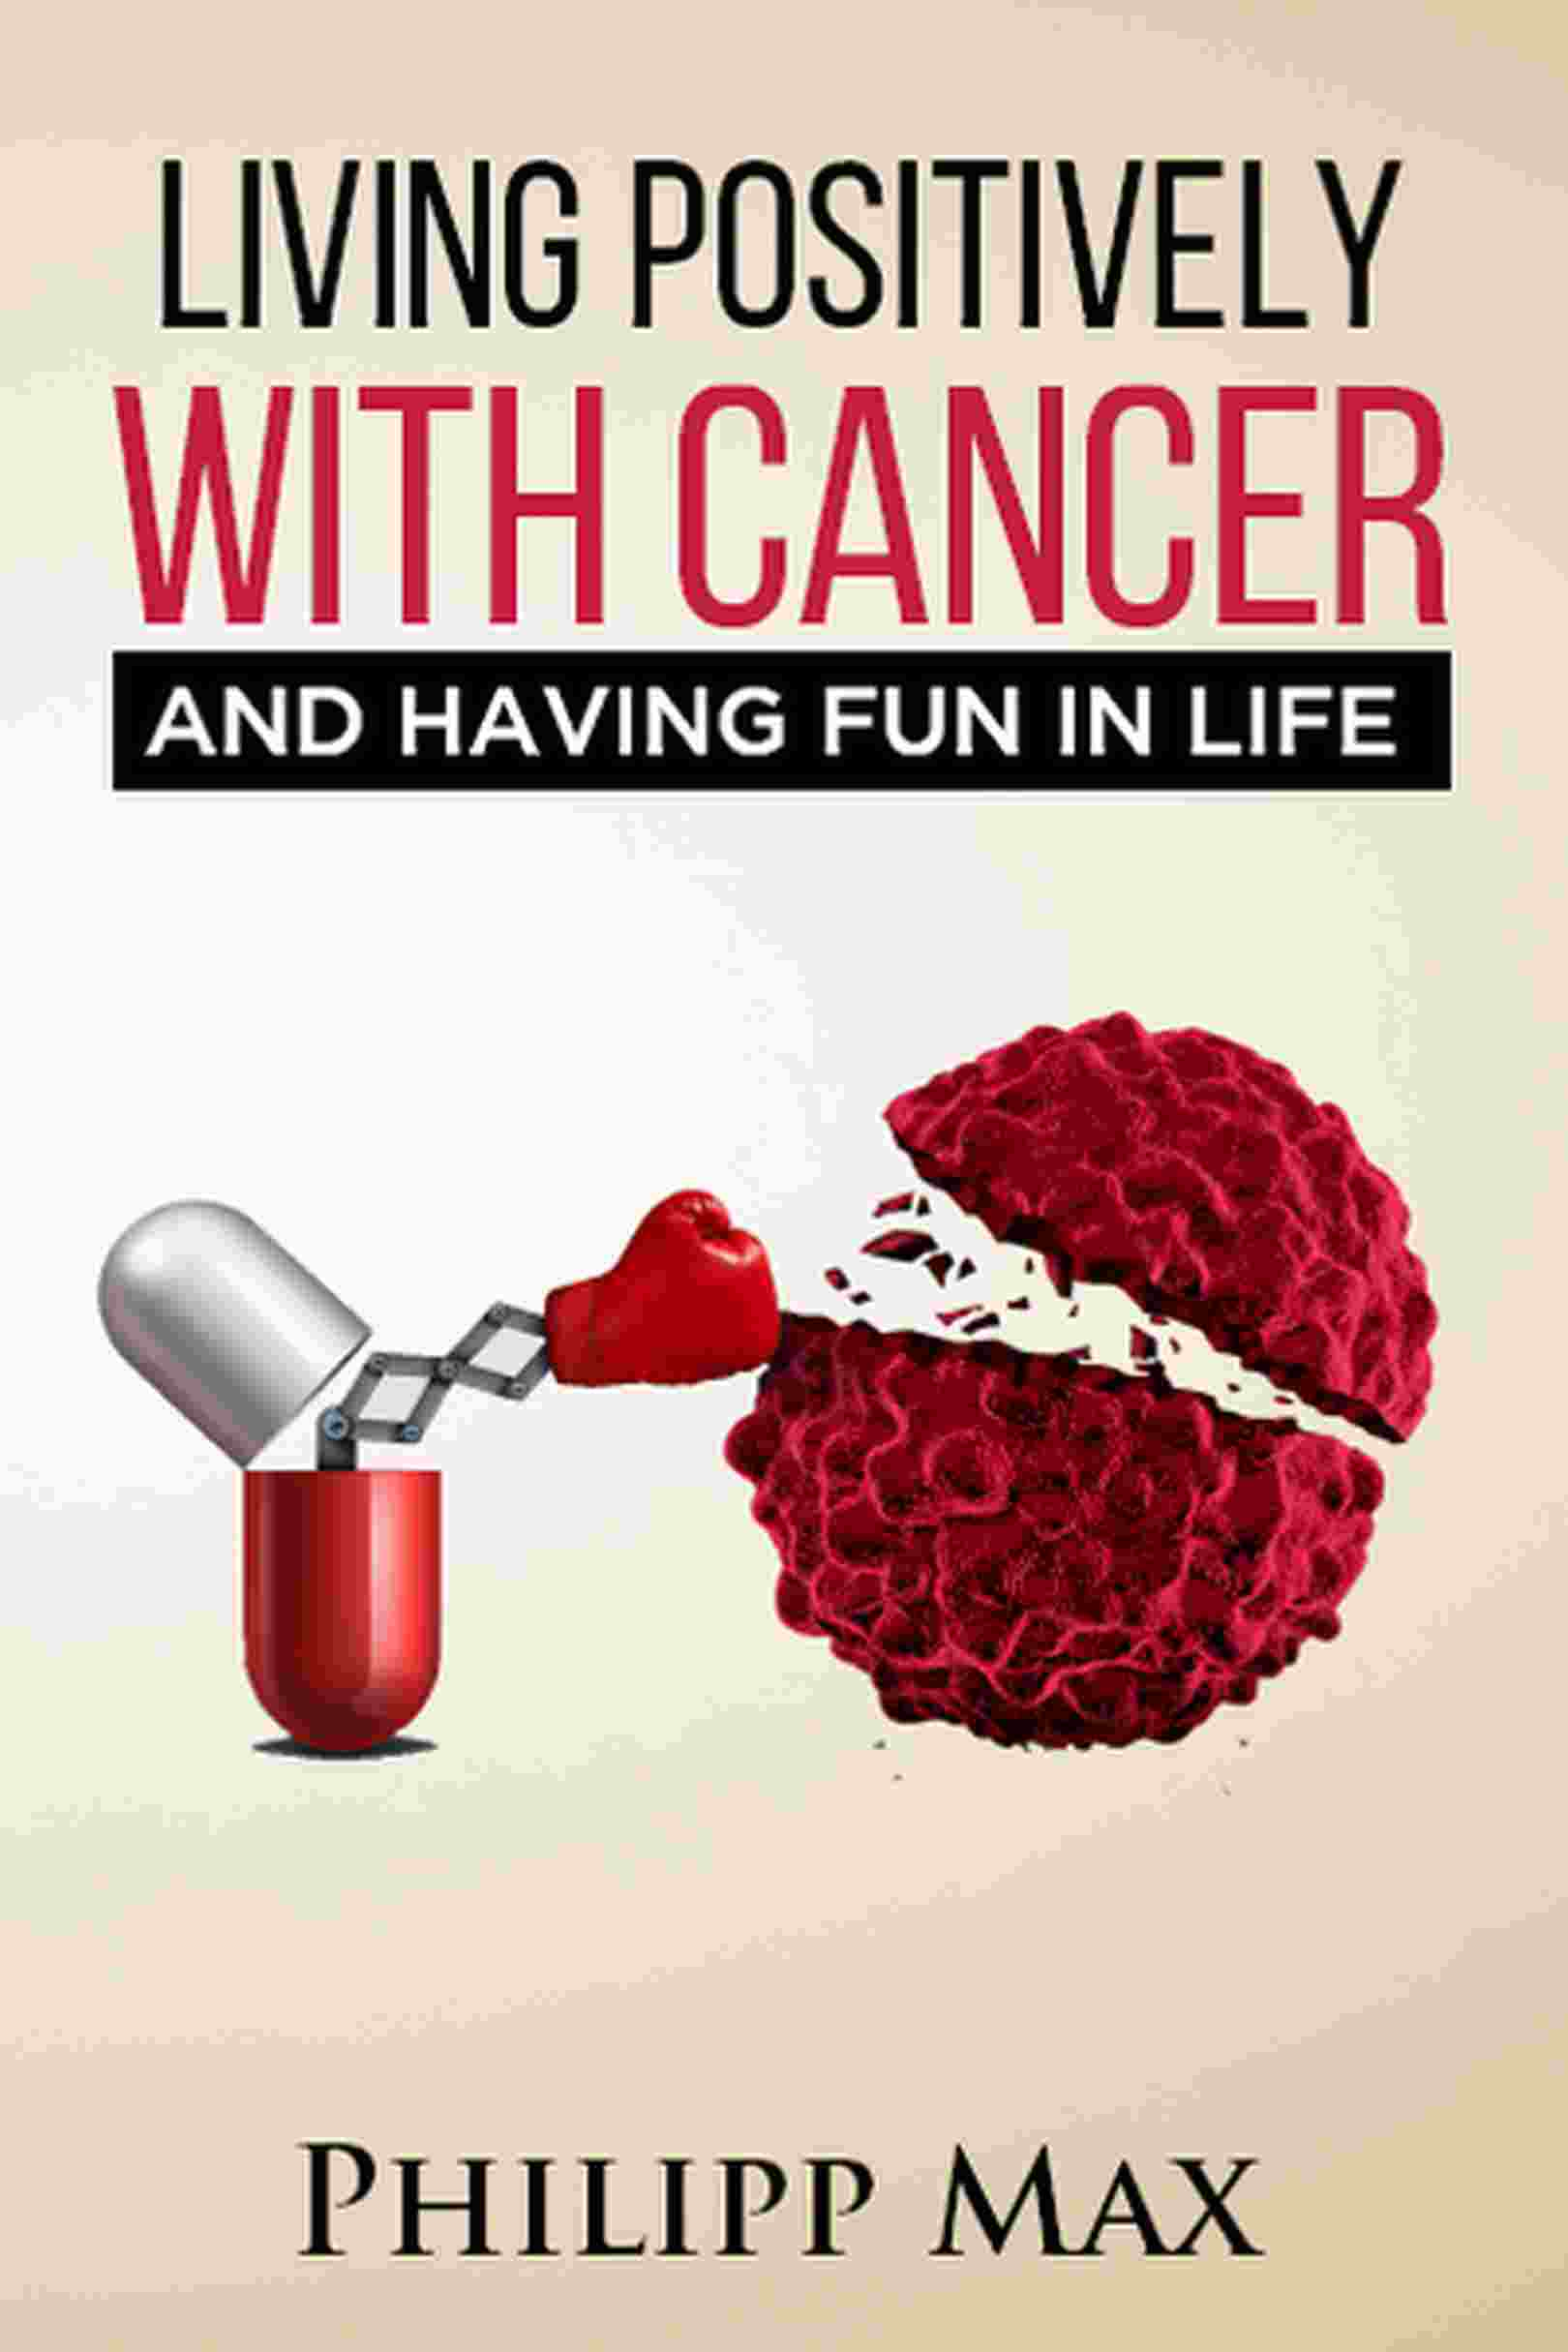 Living Positively with Cancer and Having Fun in Life